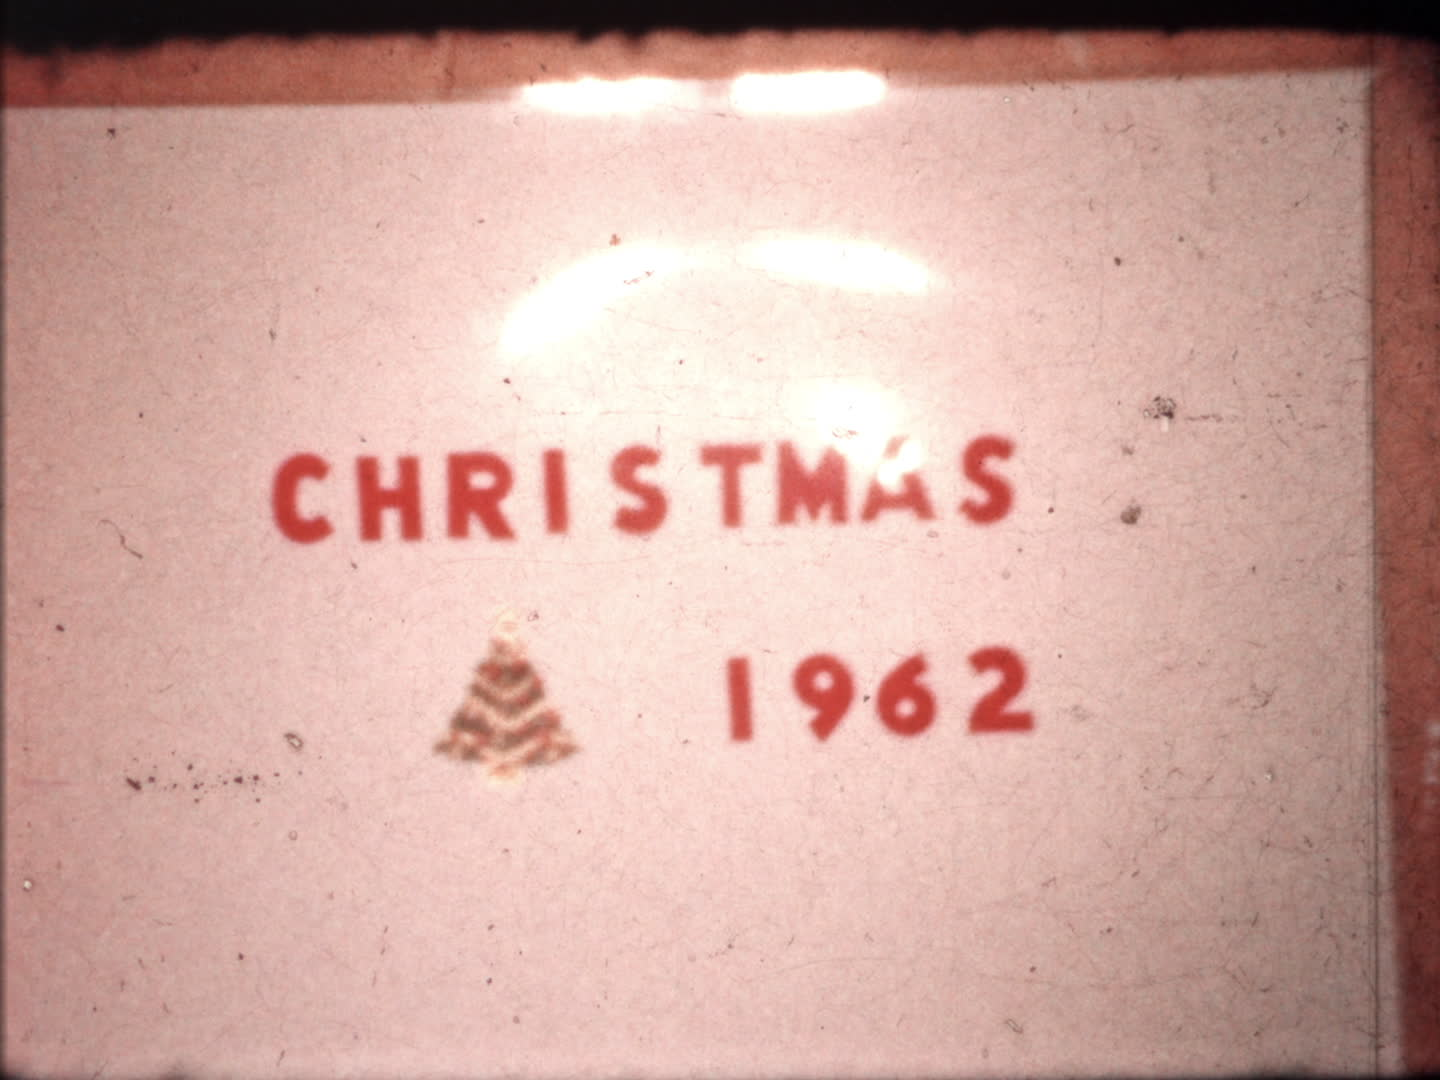 Chan family videos : Christmas 1962 sign